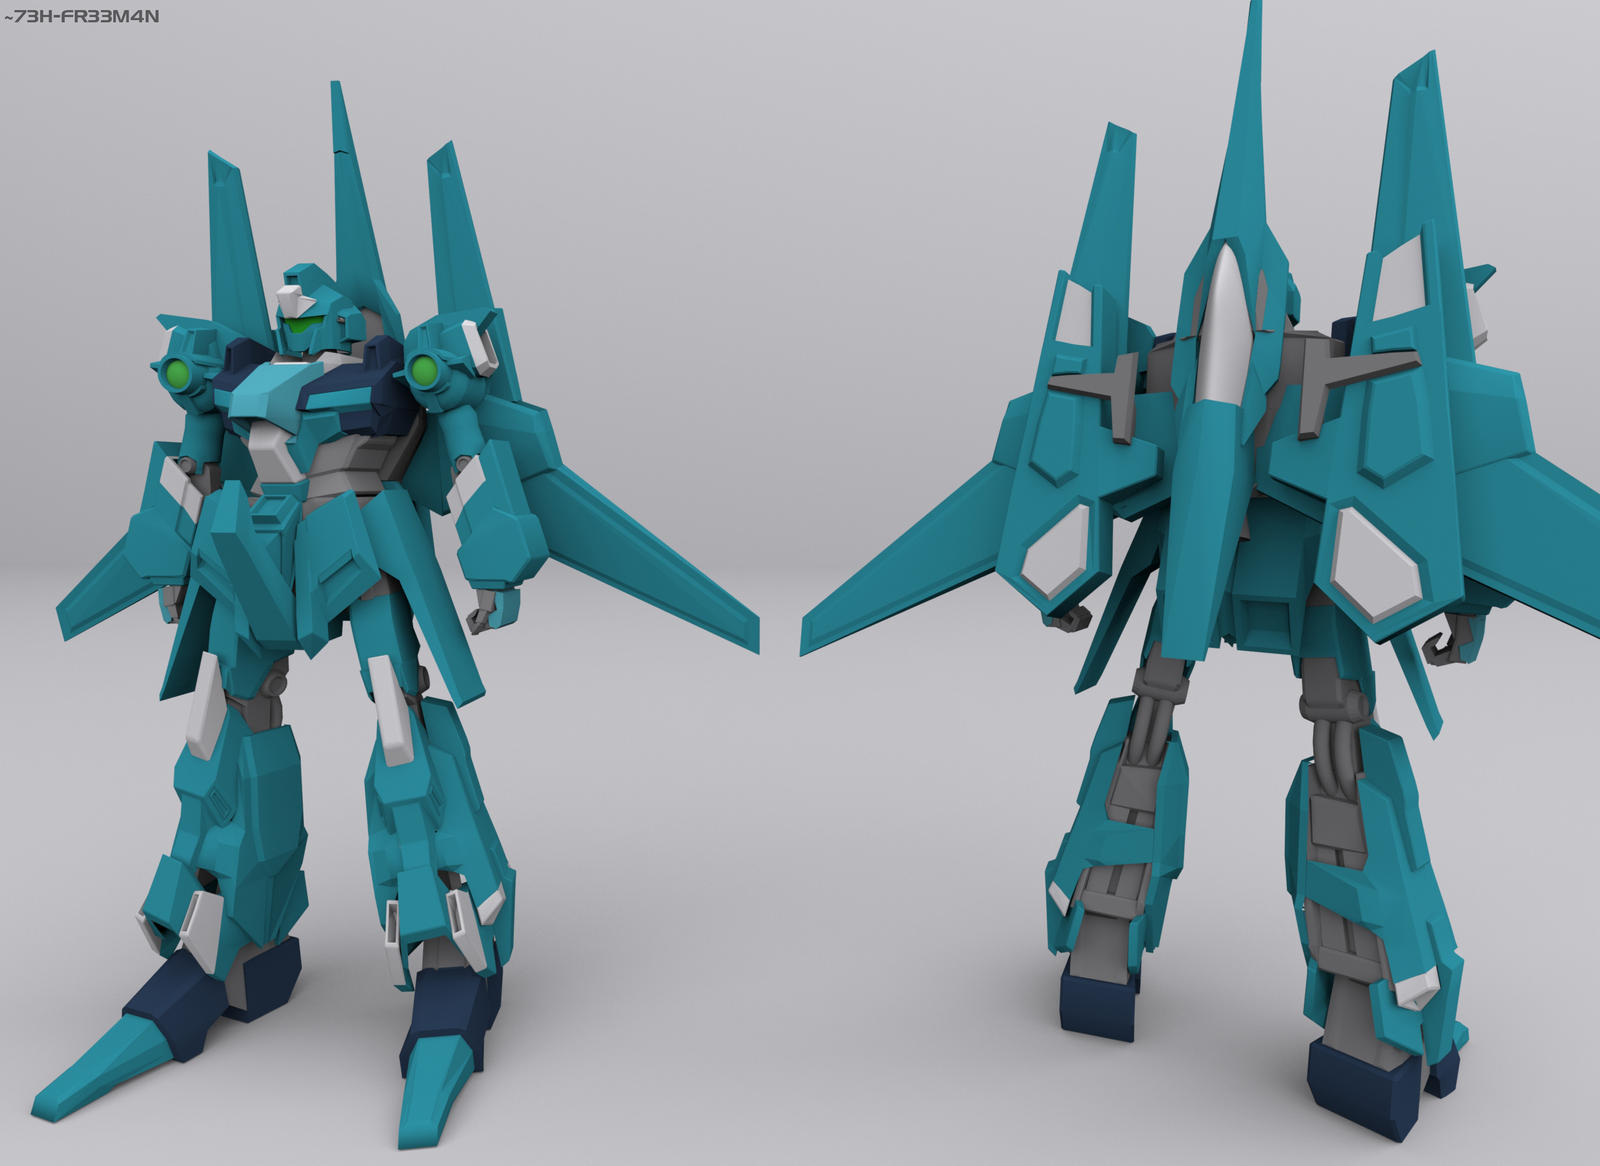 RGZ-95C ReZEL Commander Type (3D) by 73H-FR33M4N